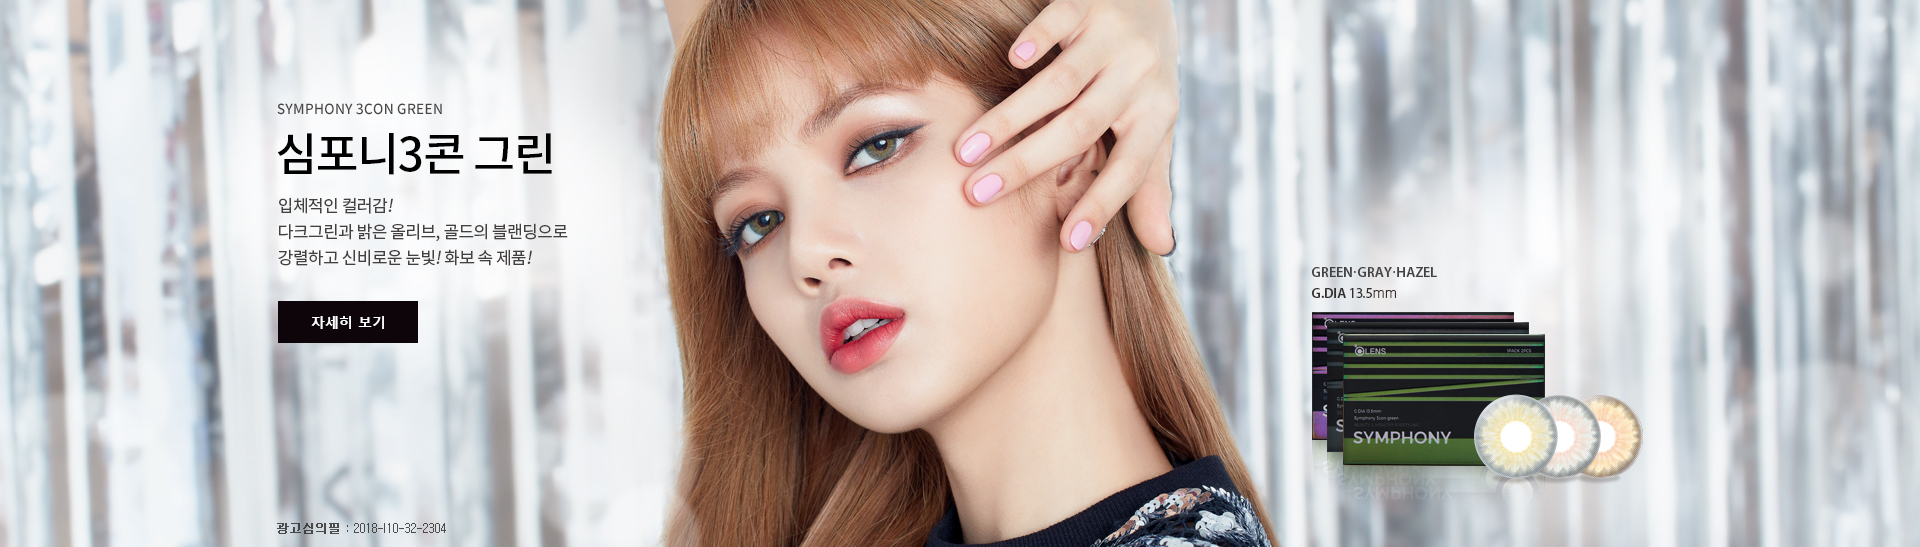 blackpink_lisa